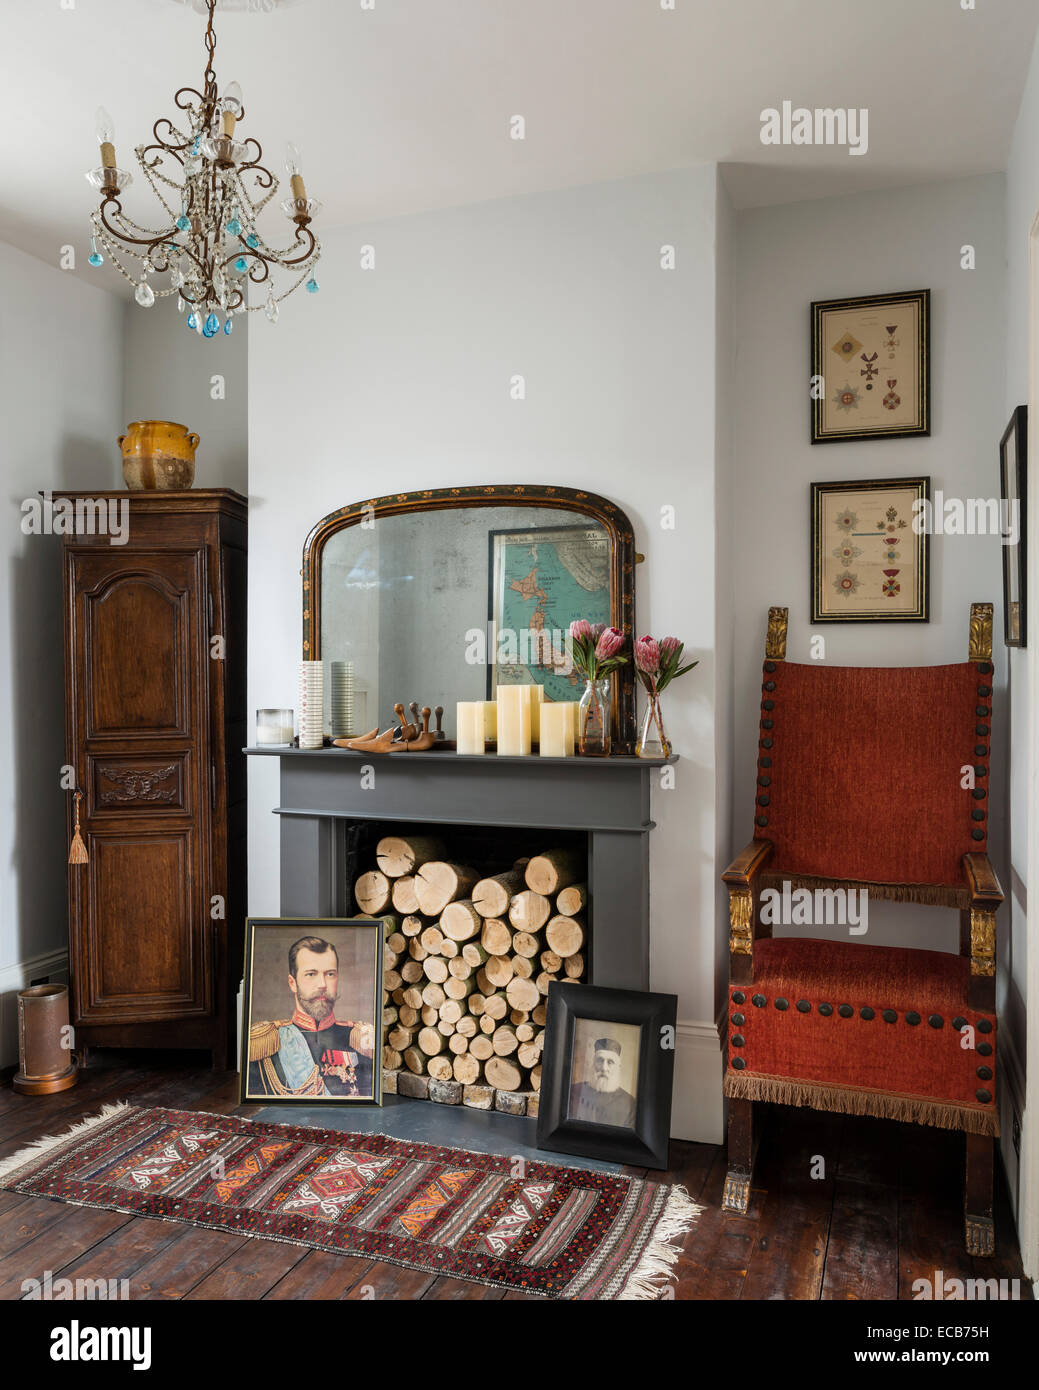 Vintage Rug On Wooden Floor In Front Of Fireplace With Logs And .